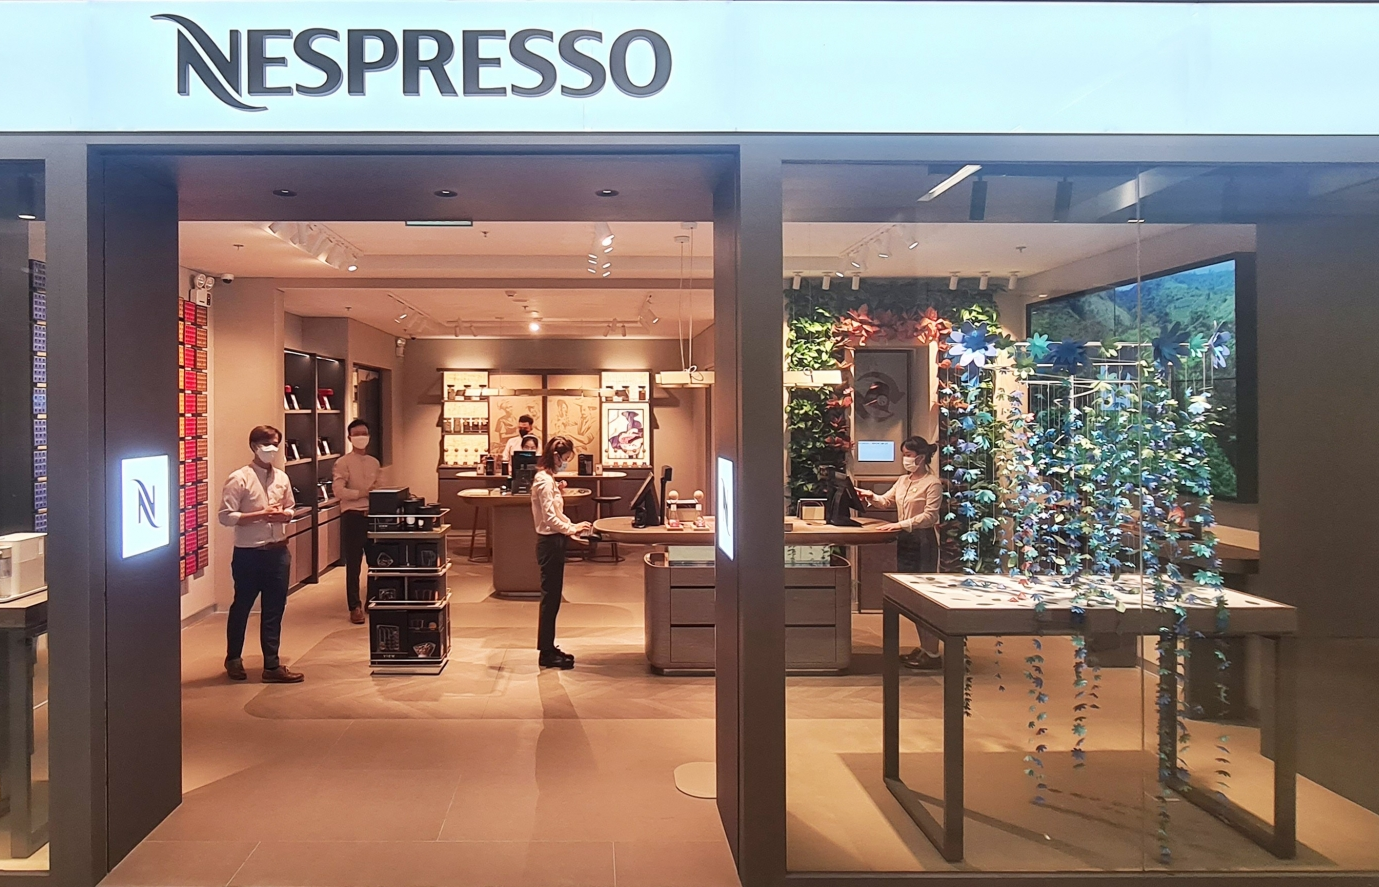 nespresso premieres new boutique concept to elevate visitors coffee experience